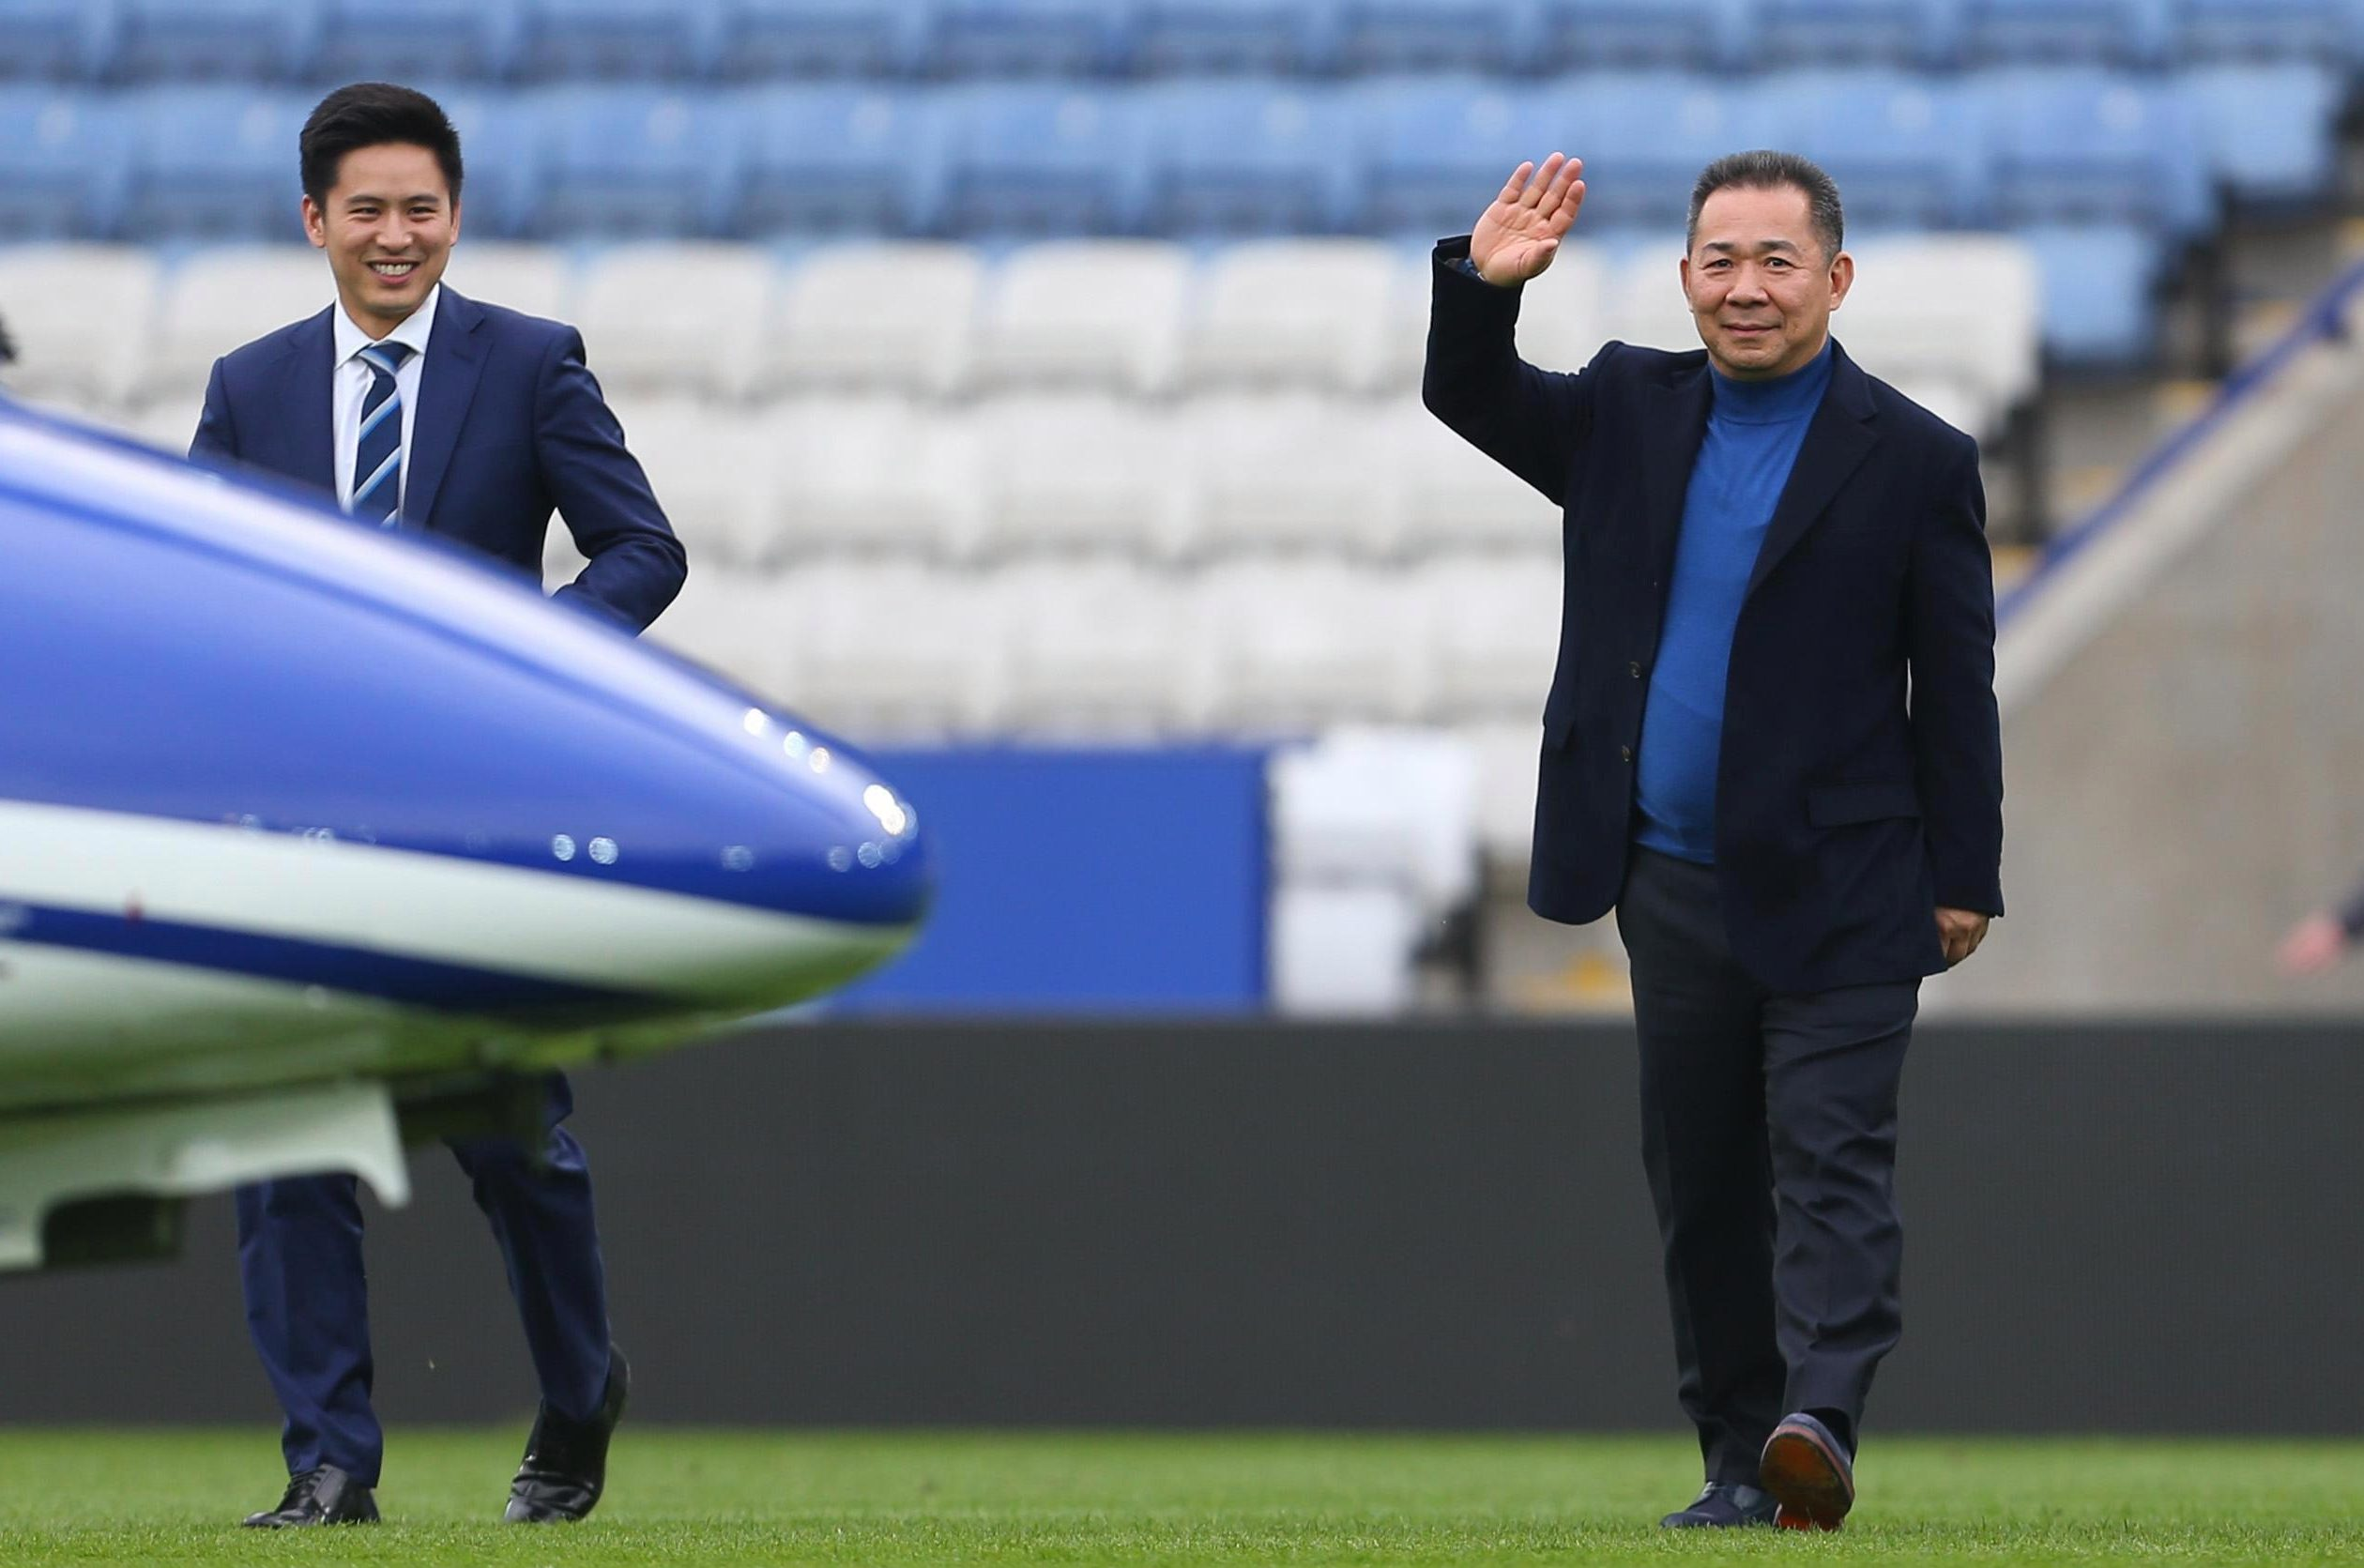 Vichai Srivaddhanaprabha walking to the helicopter after a game in 2016